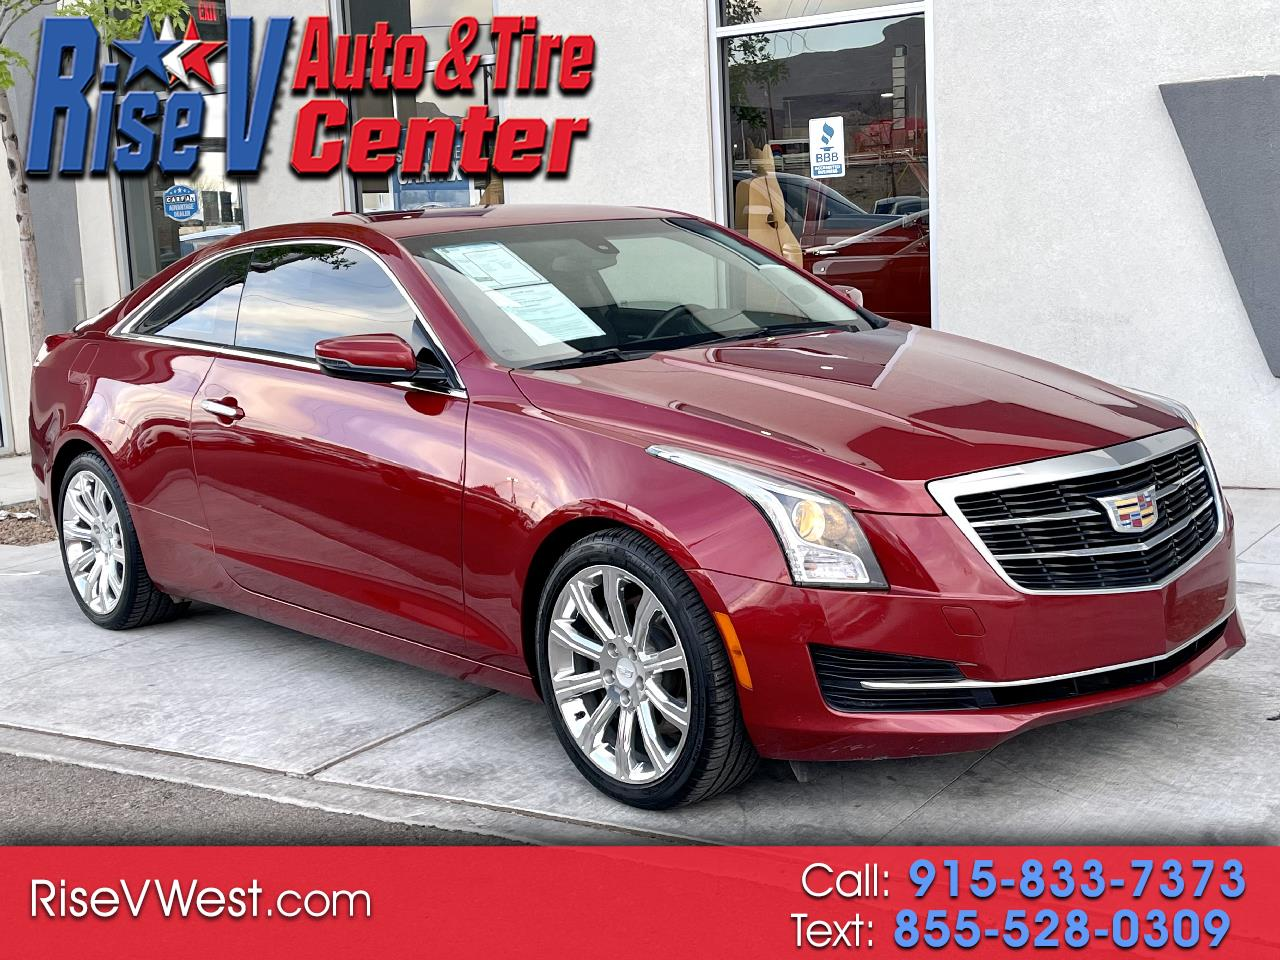 Cadillac ATS Coupe 2.0L Turbo Standard RWD 2015